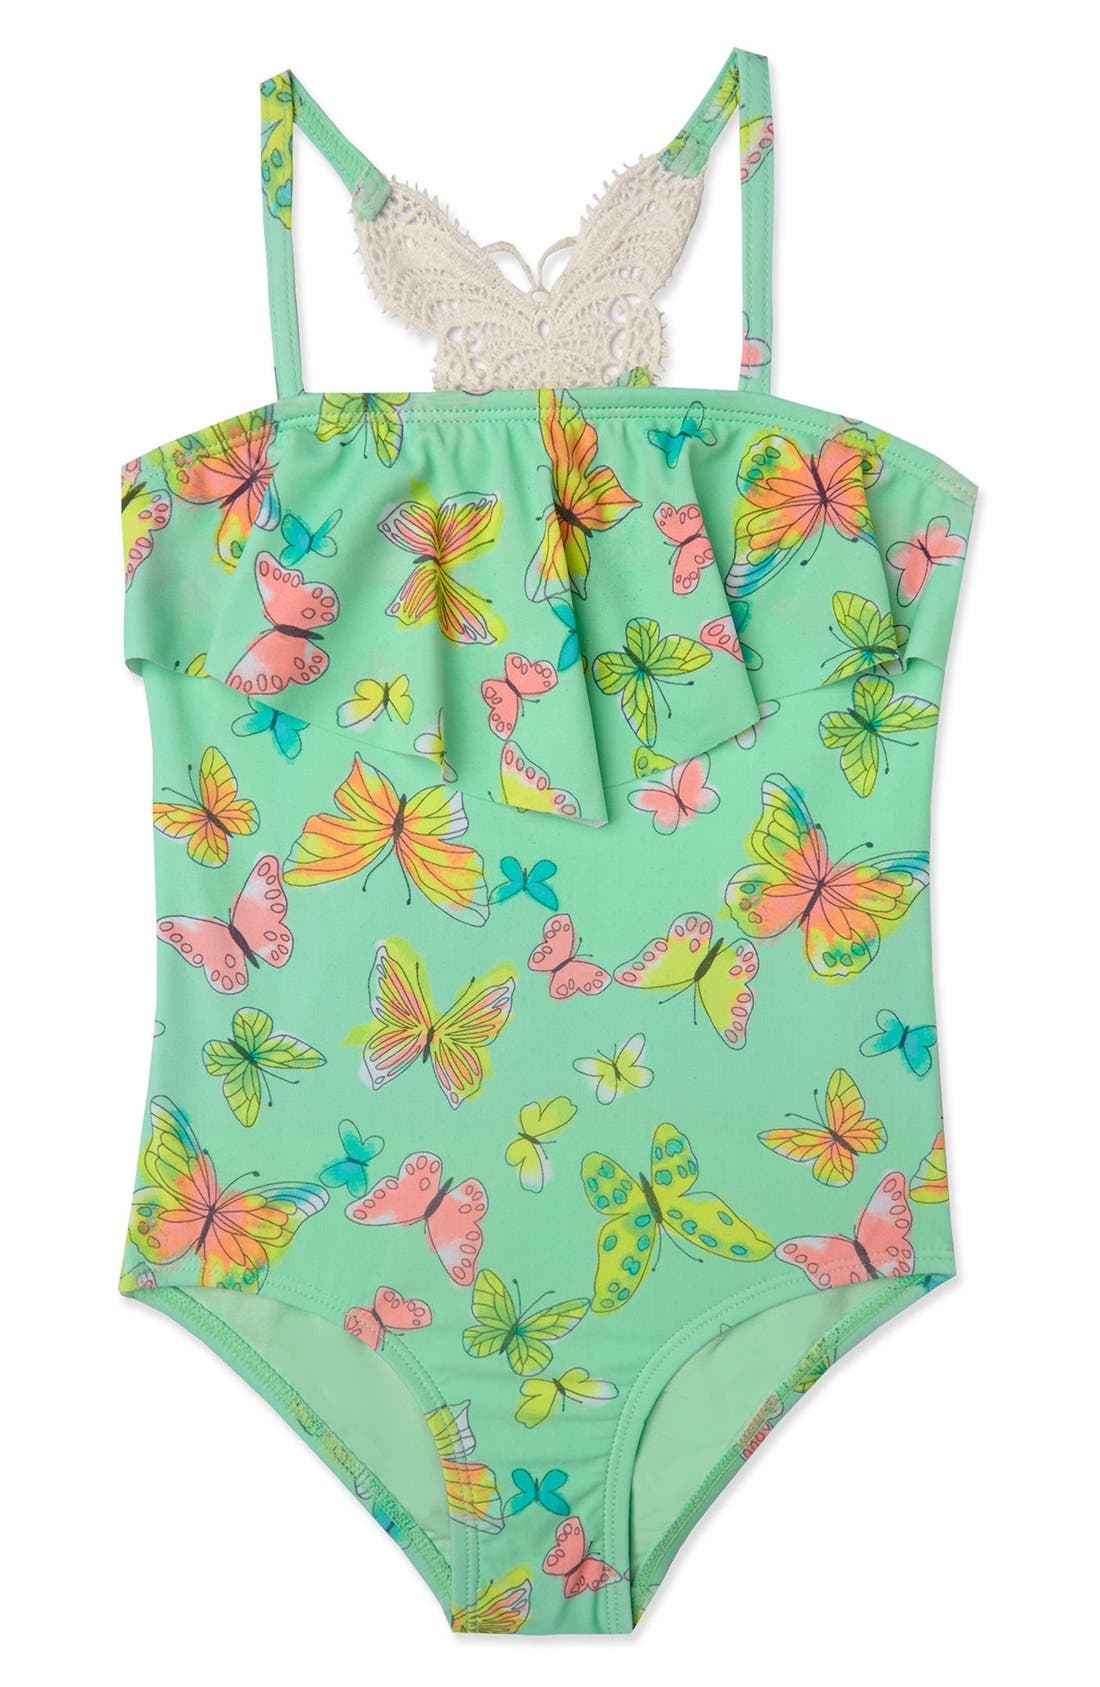 Main Image - Hula Star 'Dreamy Butterfly' One-Piece Swimsuit (Toddler Girls & Little Girls)